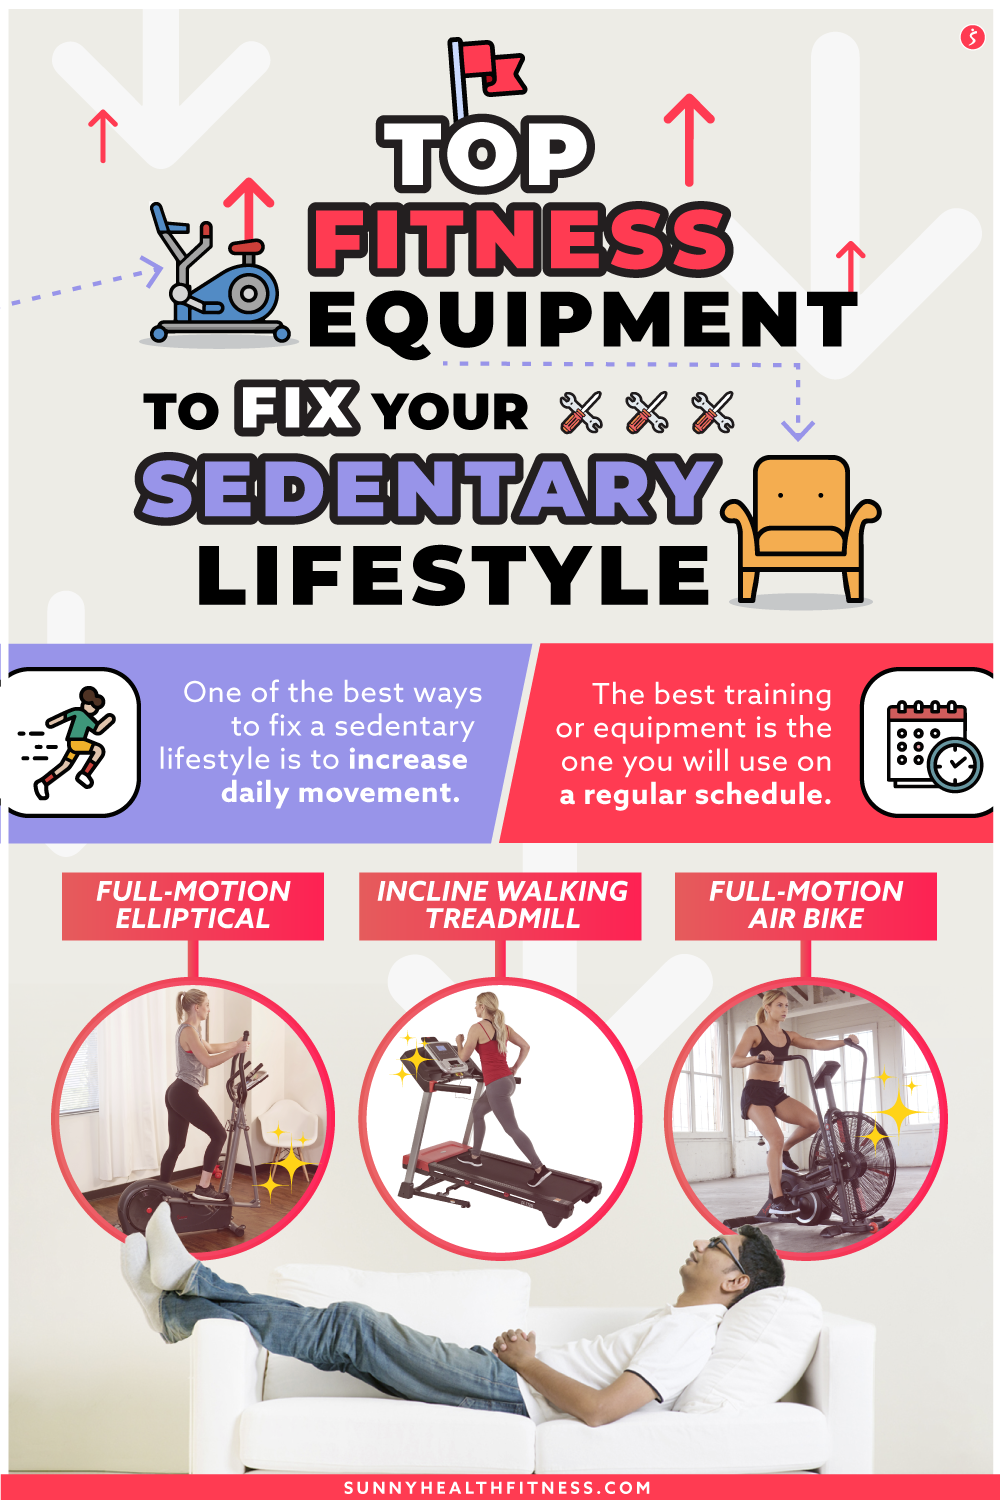 How to Fix Your Sedentary Lifestyle with Top Fitness Equipment